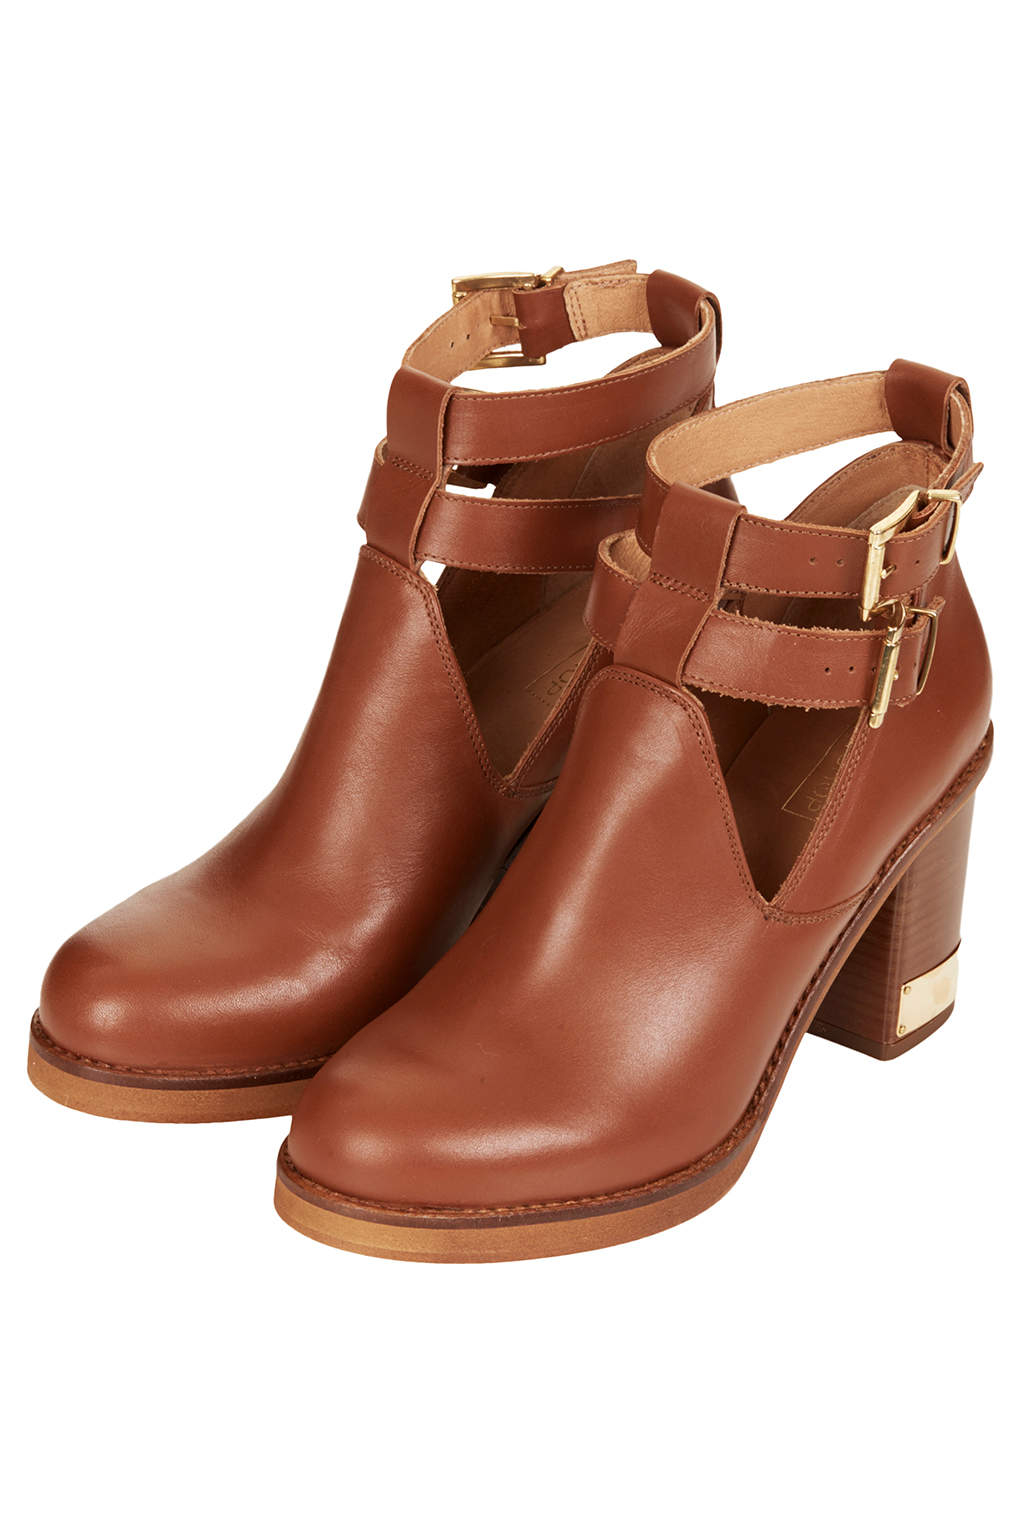 Topshop All Yours Ankle Boots in Brown | Lyst